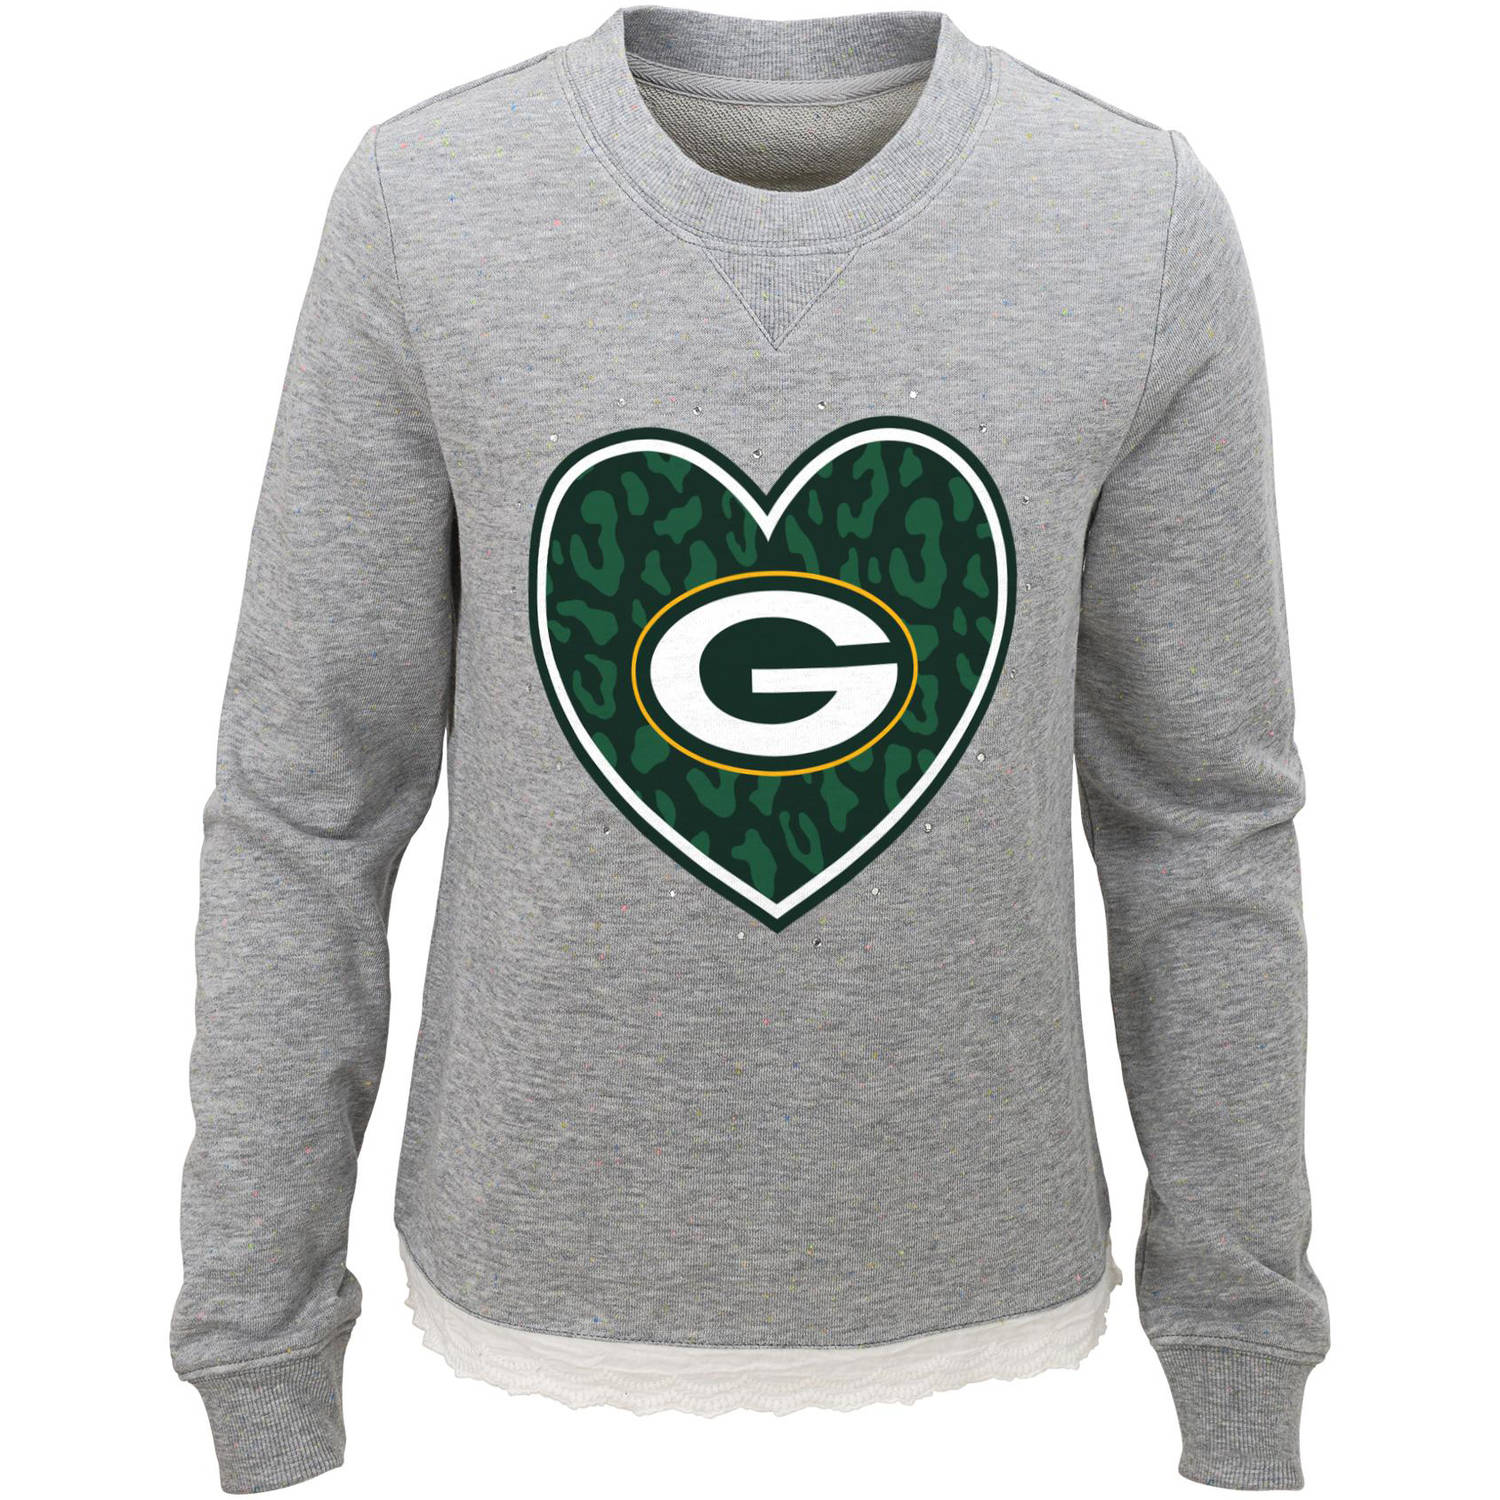 NFL Girls Packers Long Sleeve French Terry Crew Neck Fleece